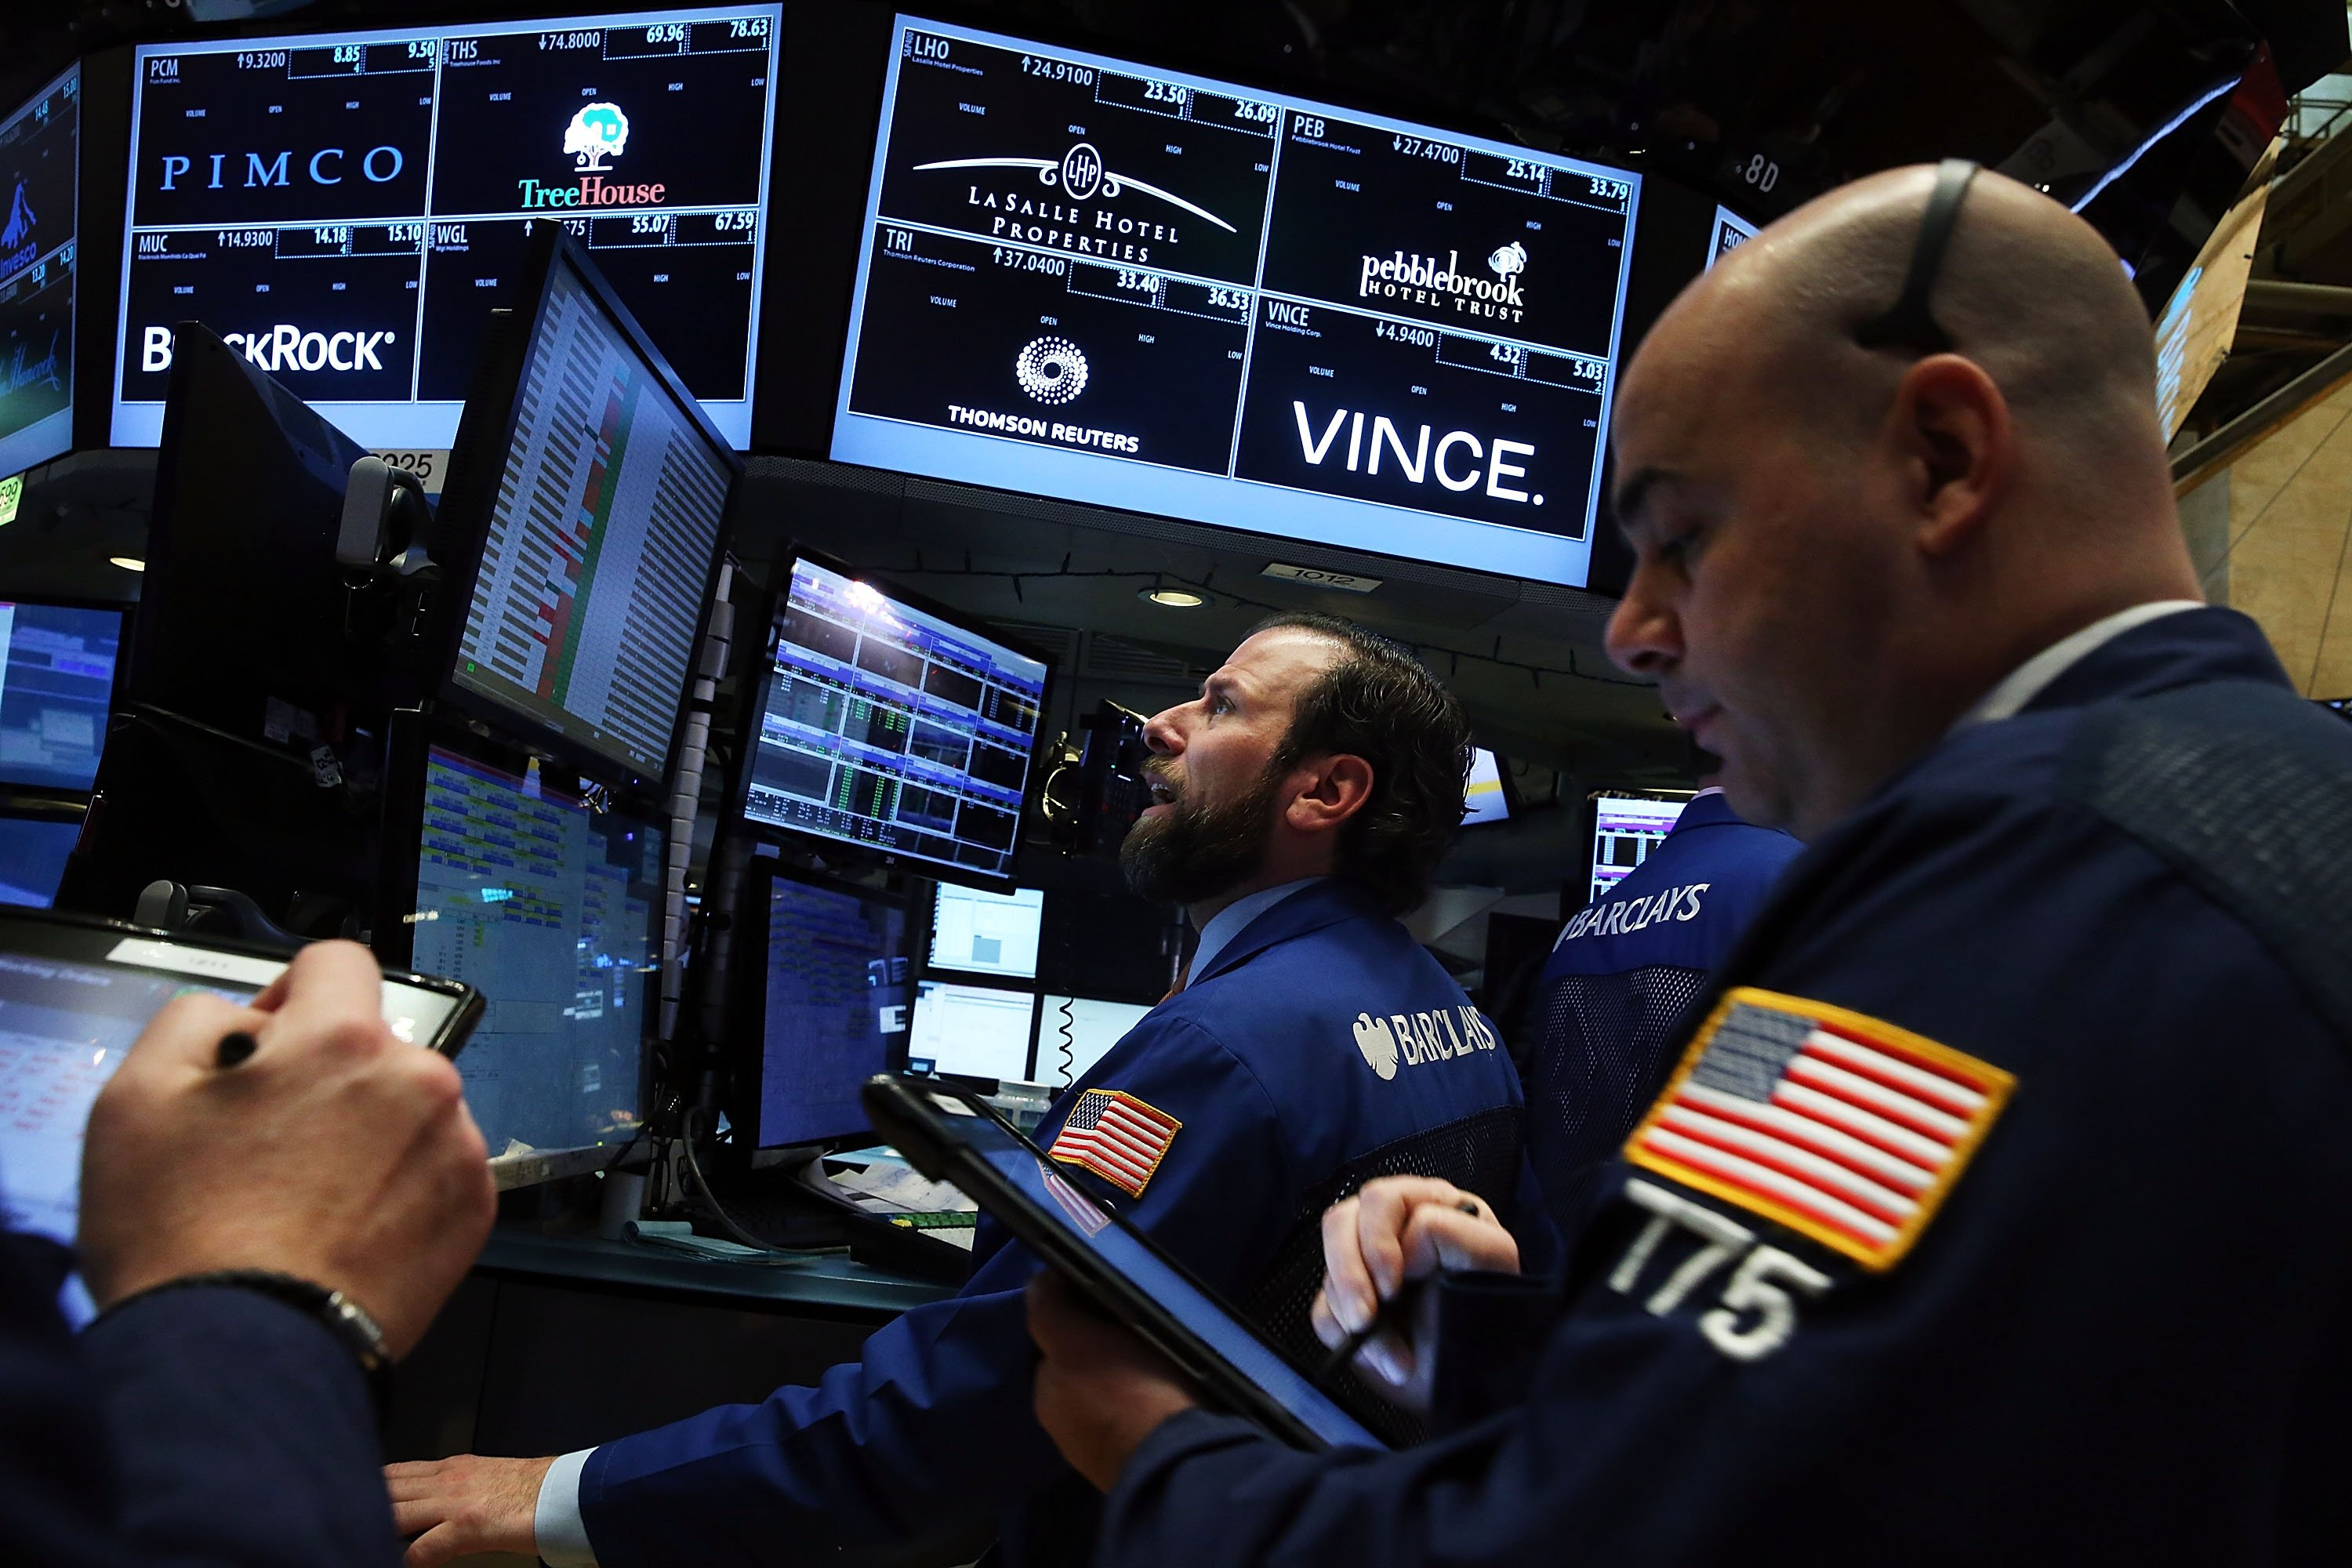 Traders work on the floor of the New York Stock Exchange in New York City on January 6, 2016.